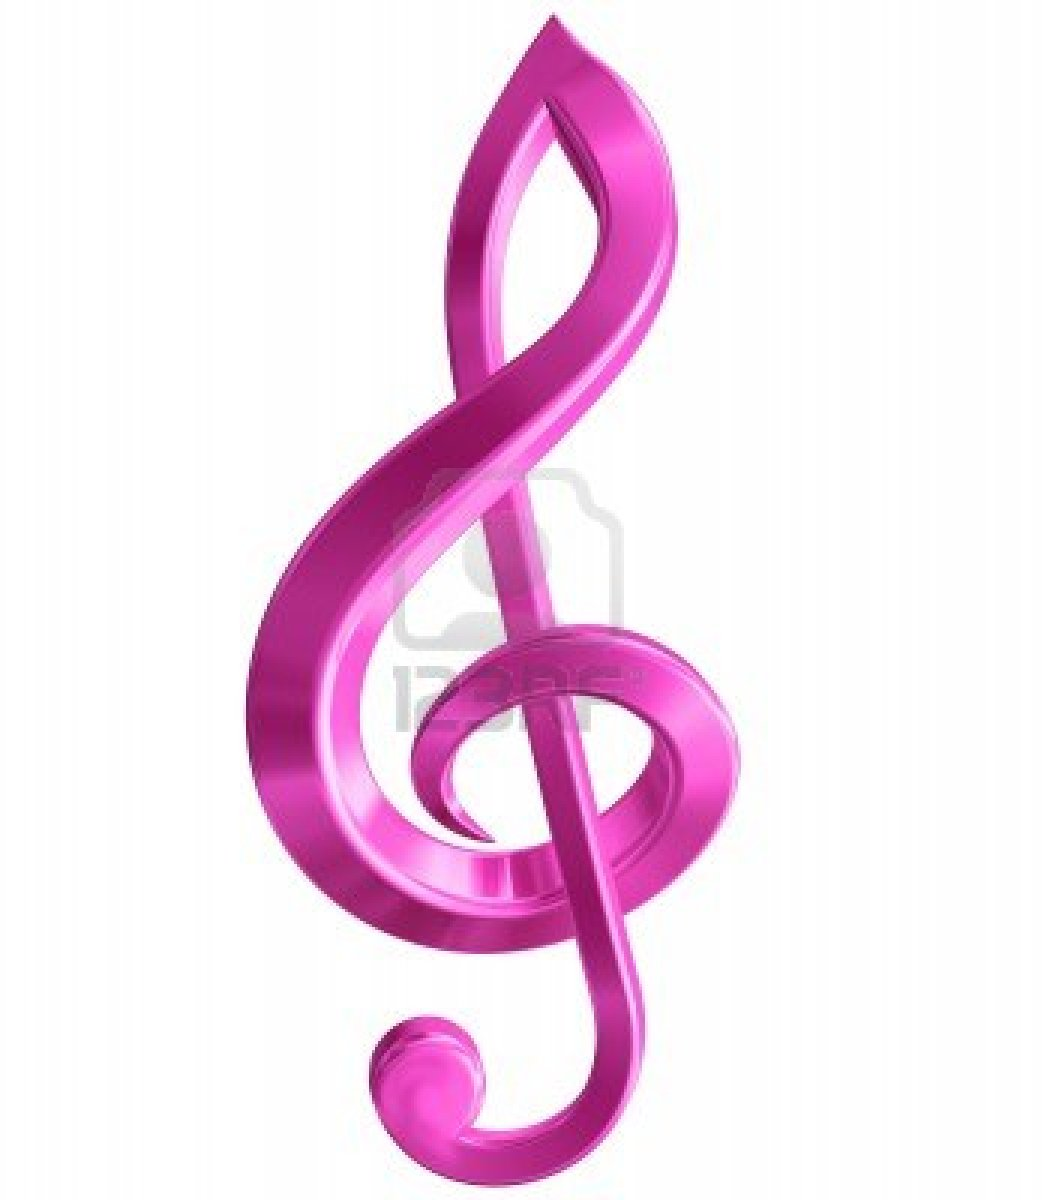 music emblems clipart - photo #30